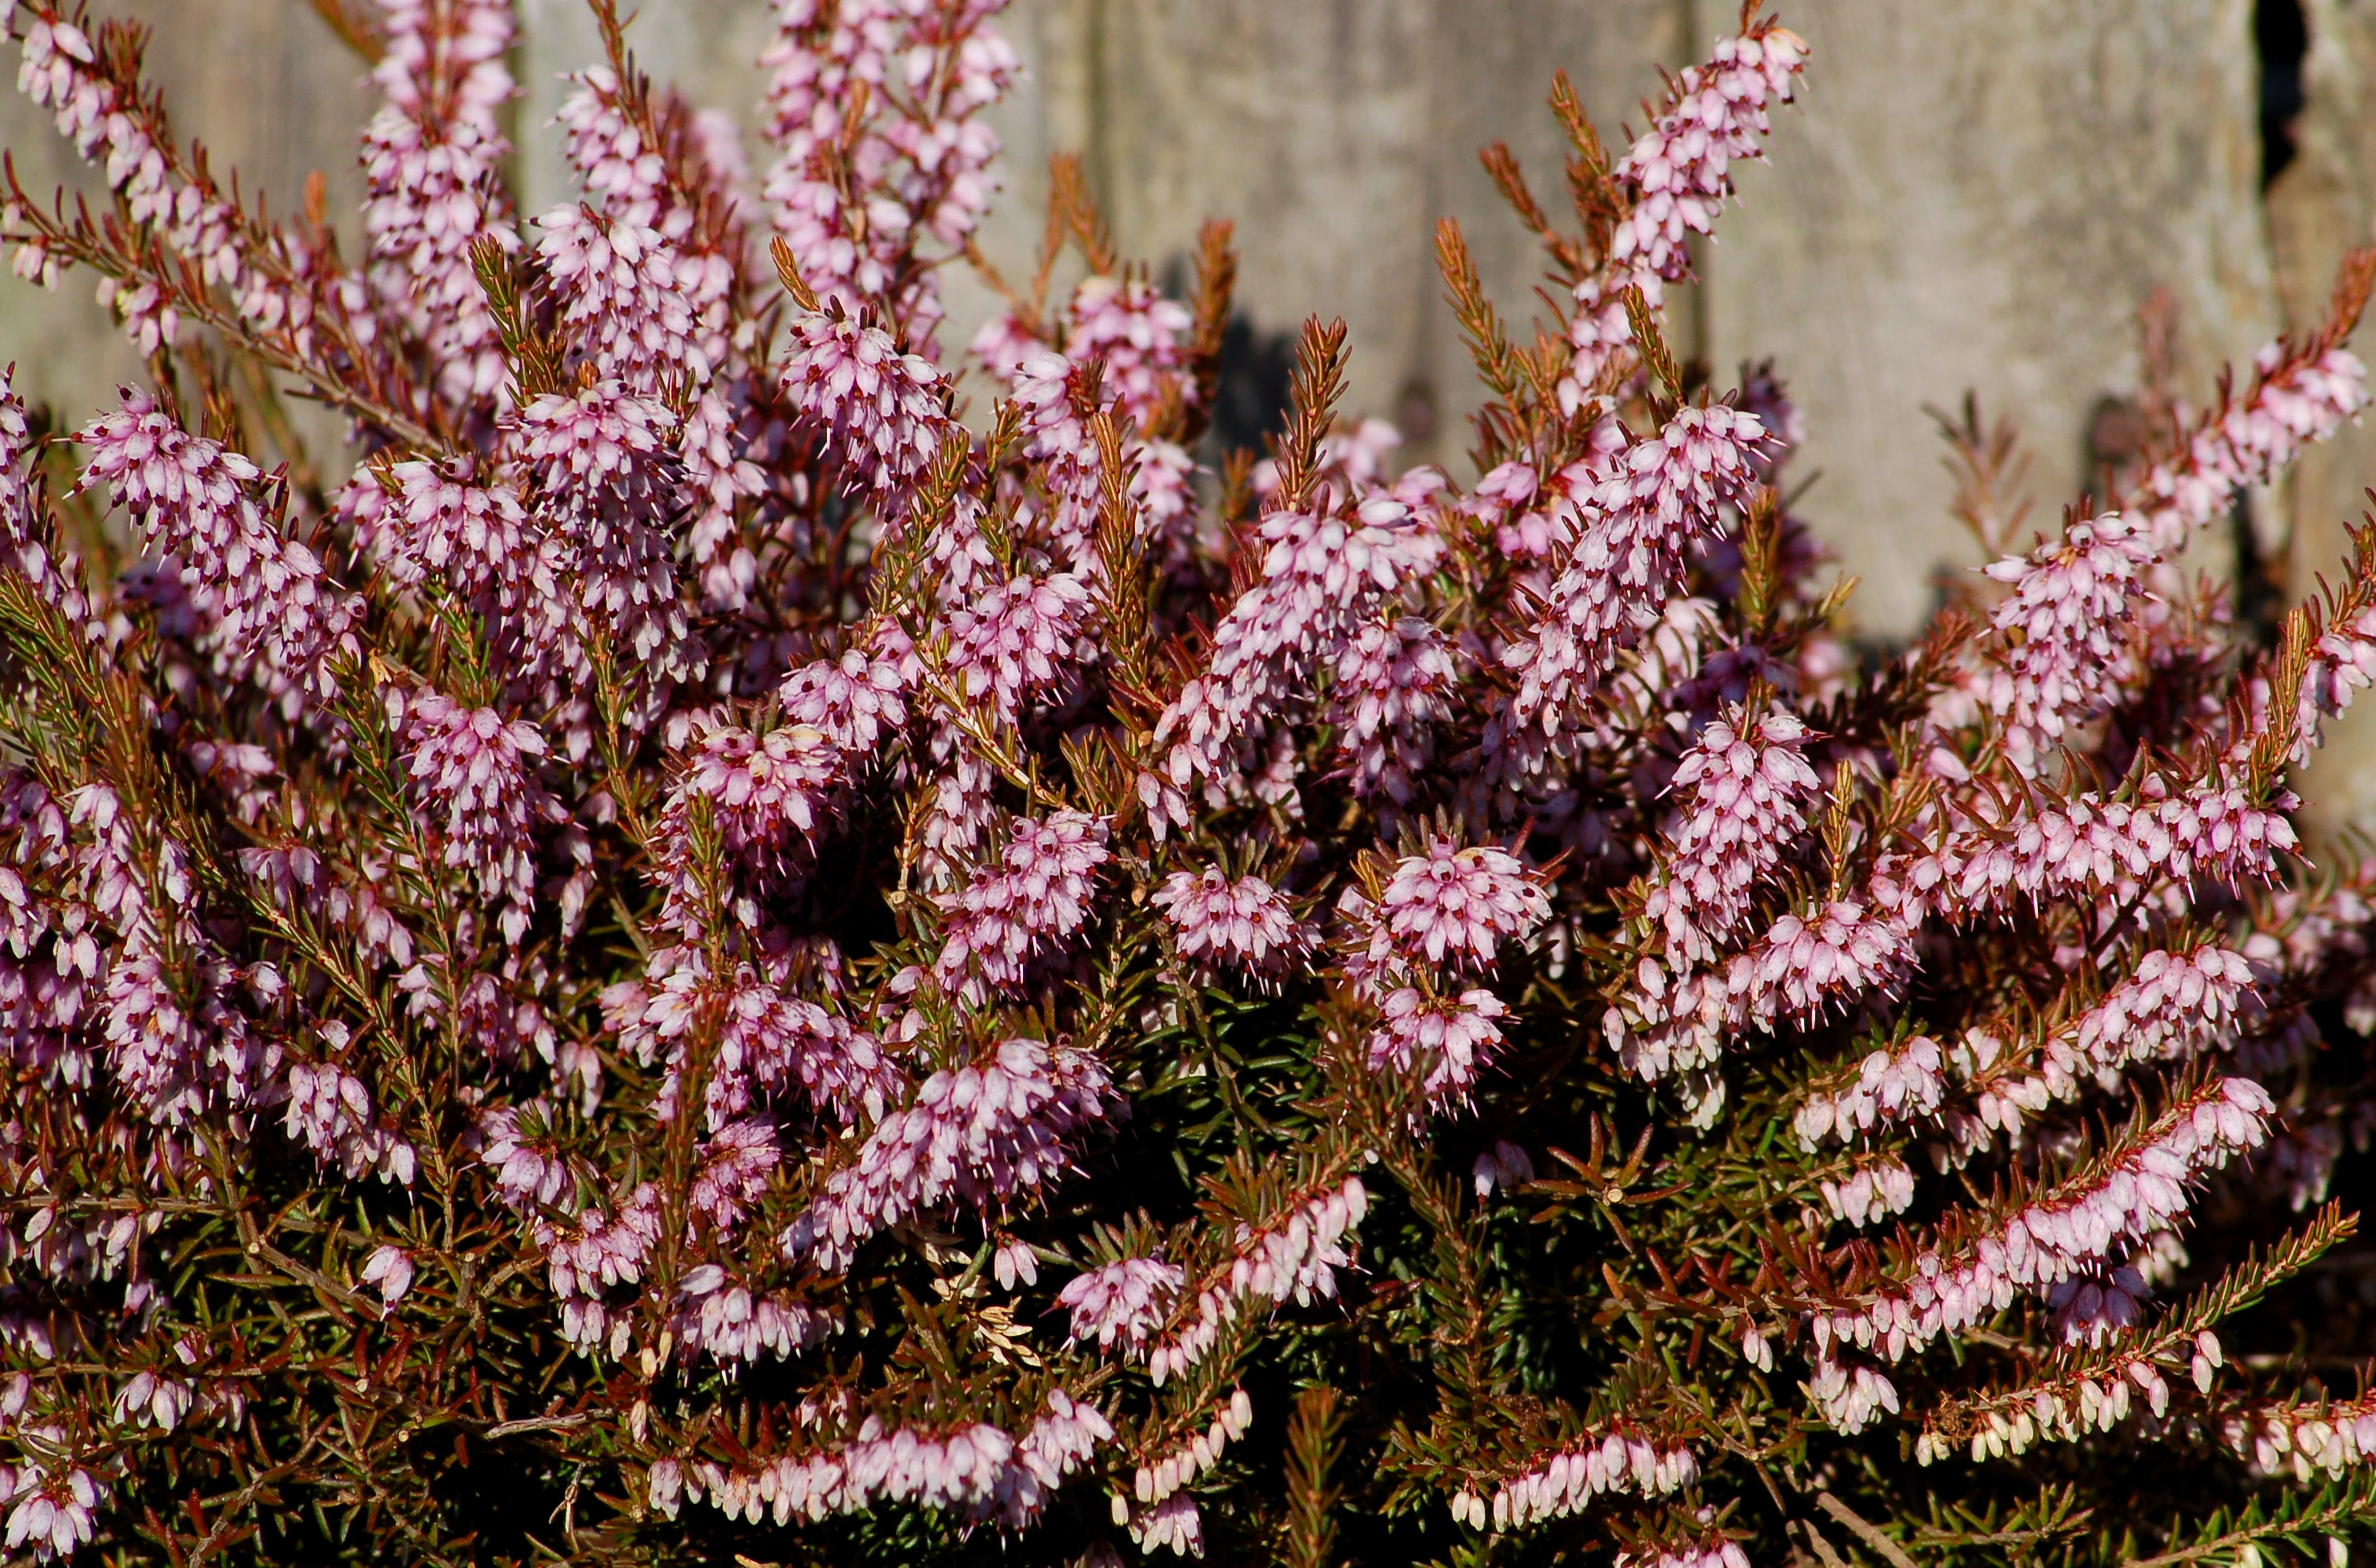 Flower bushes that bloom in winter - Flower Bushes That Bloom In Winter 13